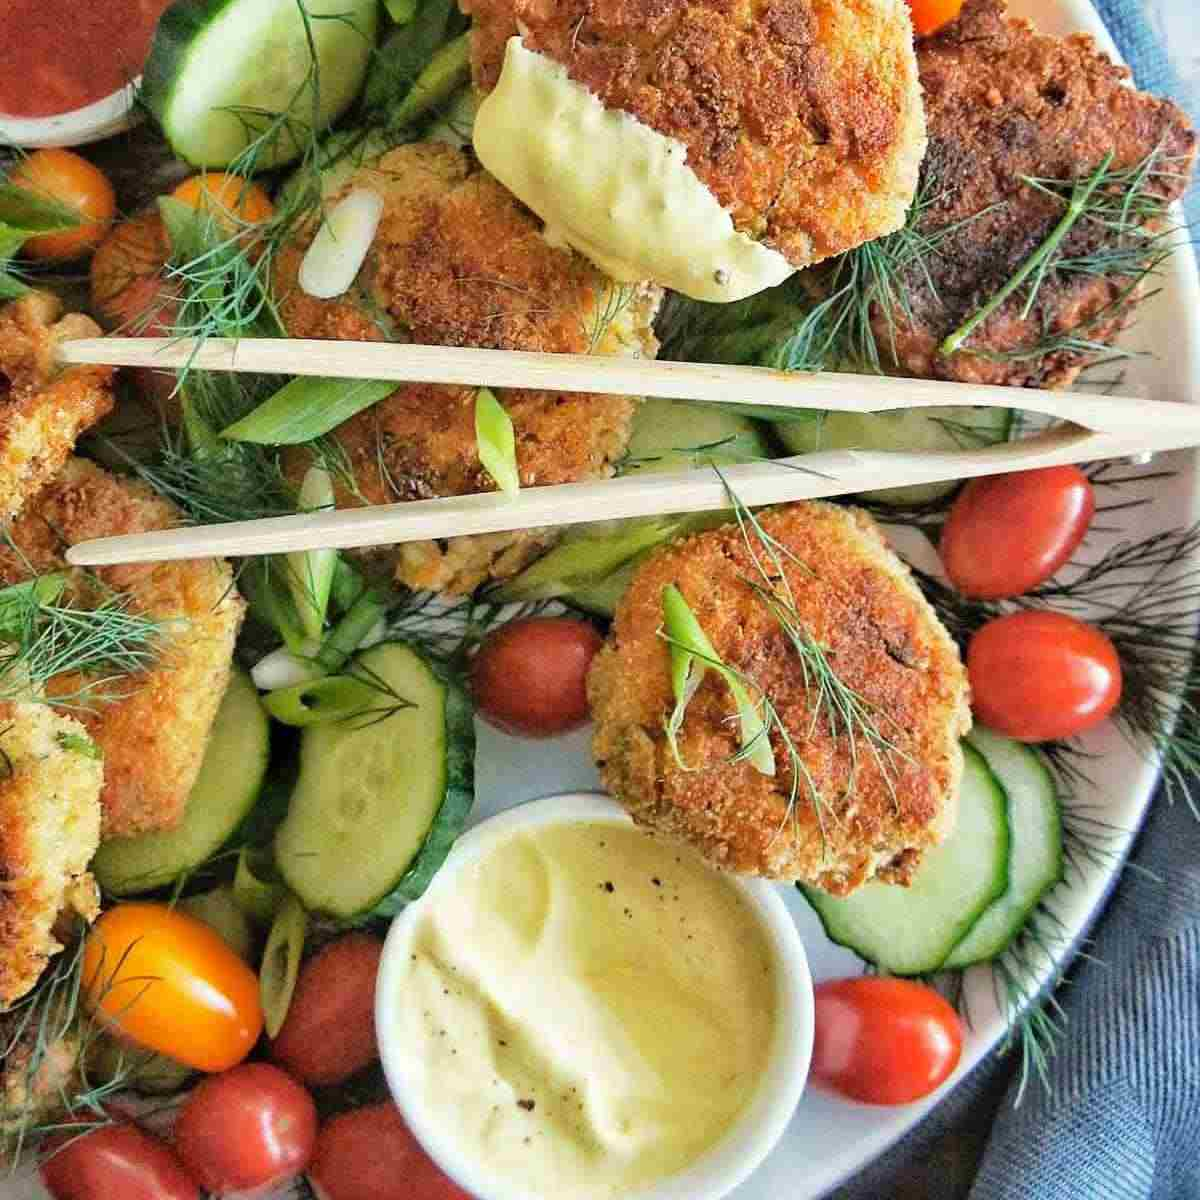 Crab cakes and salad on a large white platter with a small bowl of dipping sauce